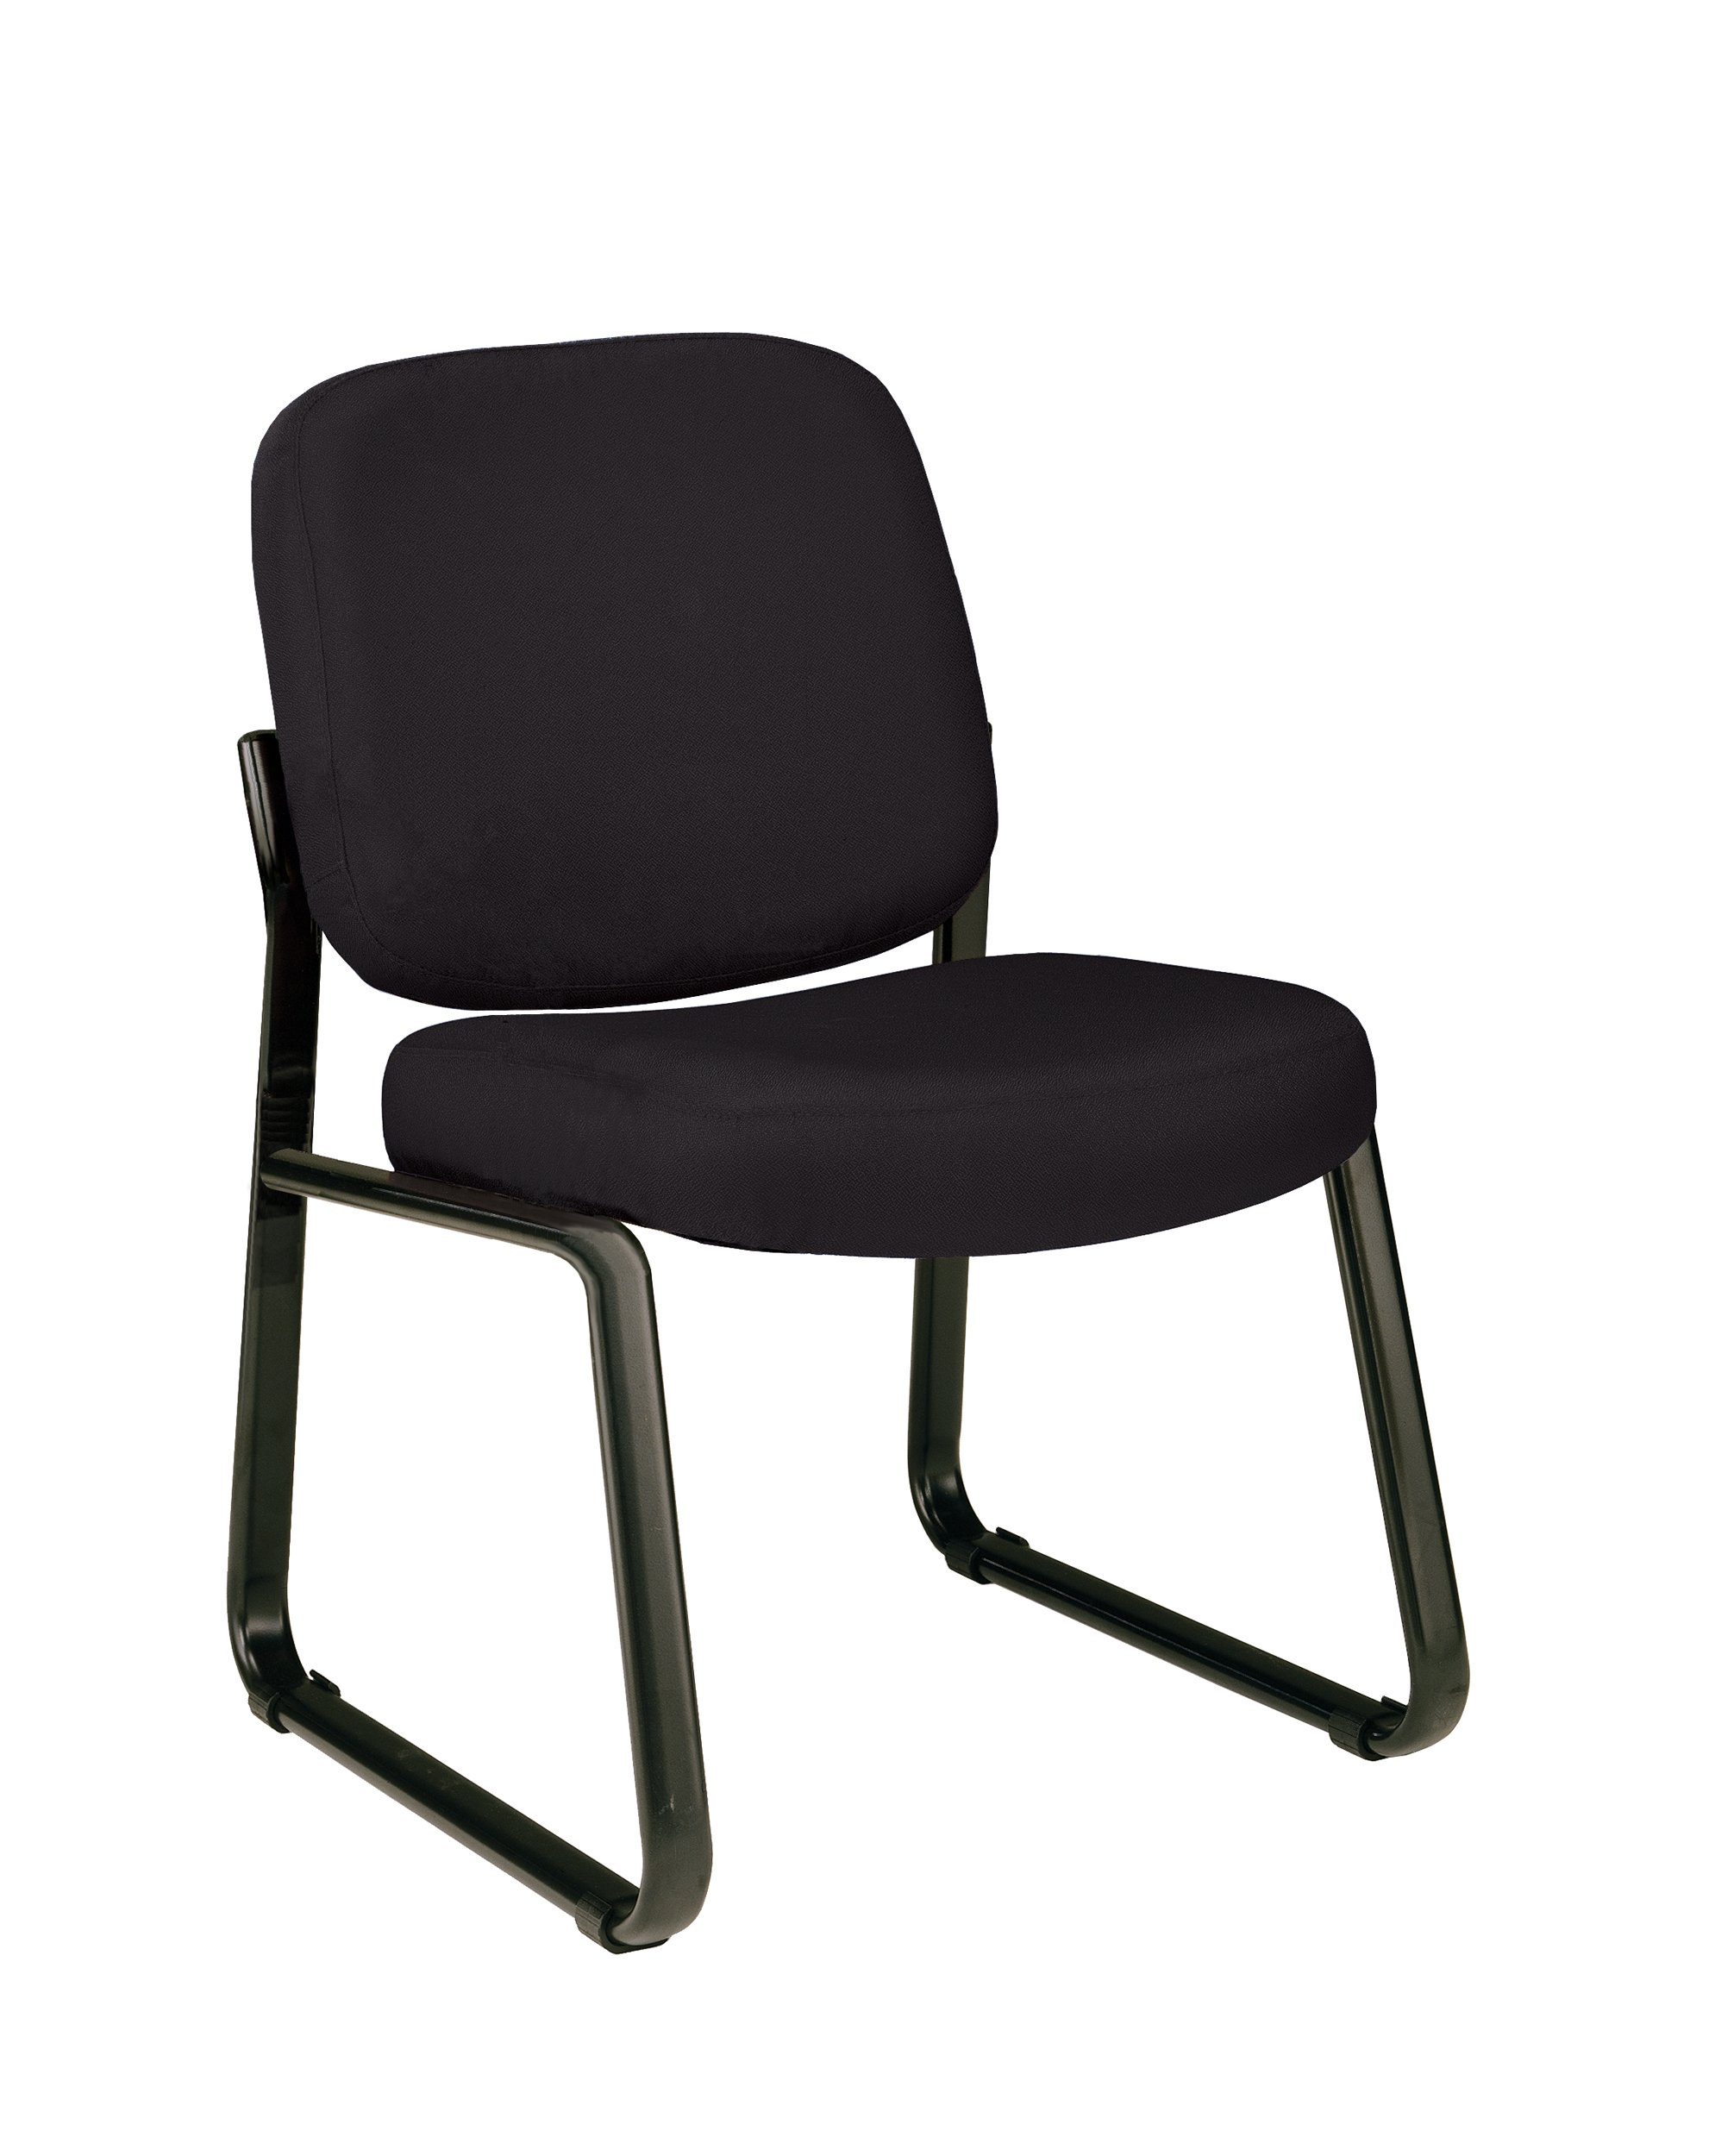 OFM Armless Reception Chair - Mid-Back Guest Chair, Black by OFM